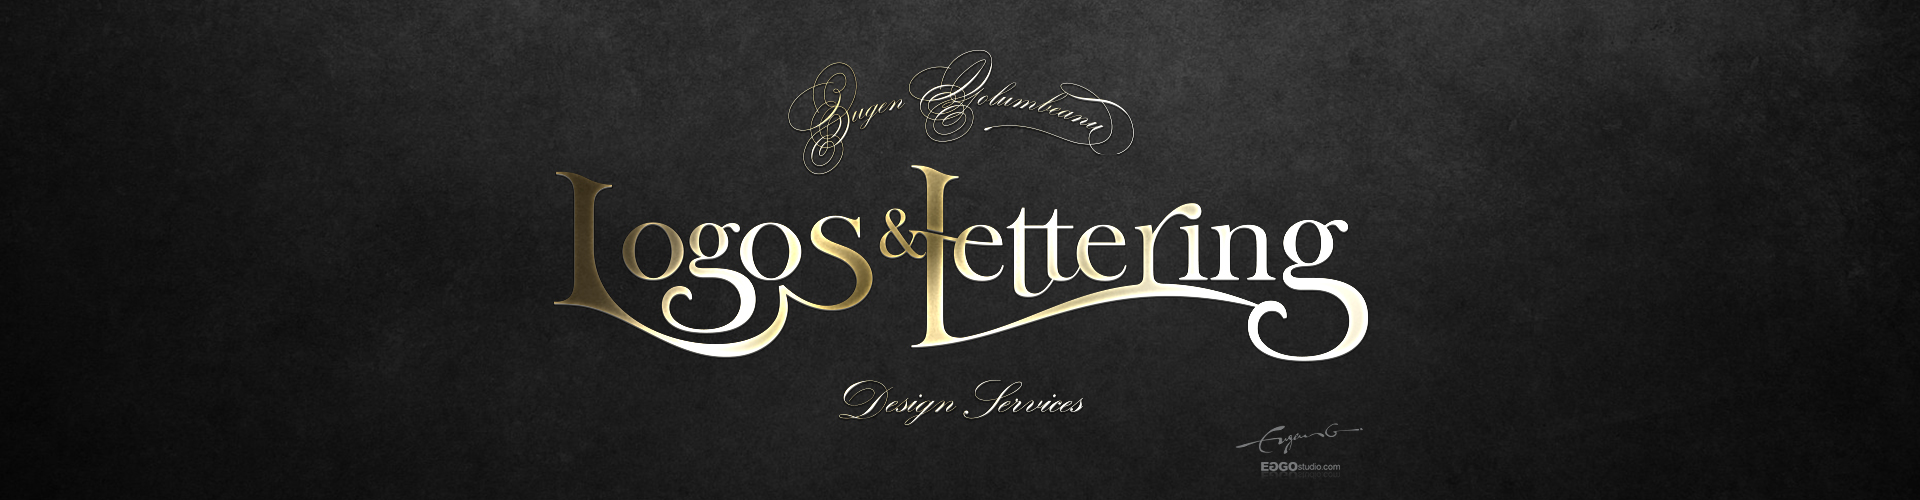 Logos-And-letteringHEADERS